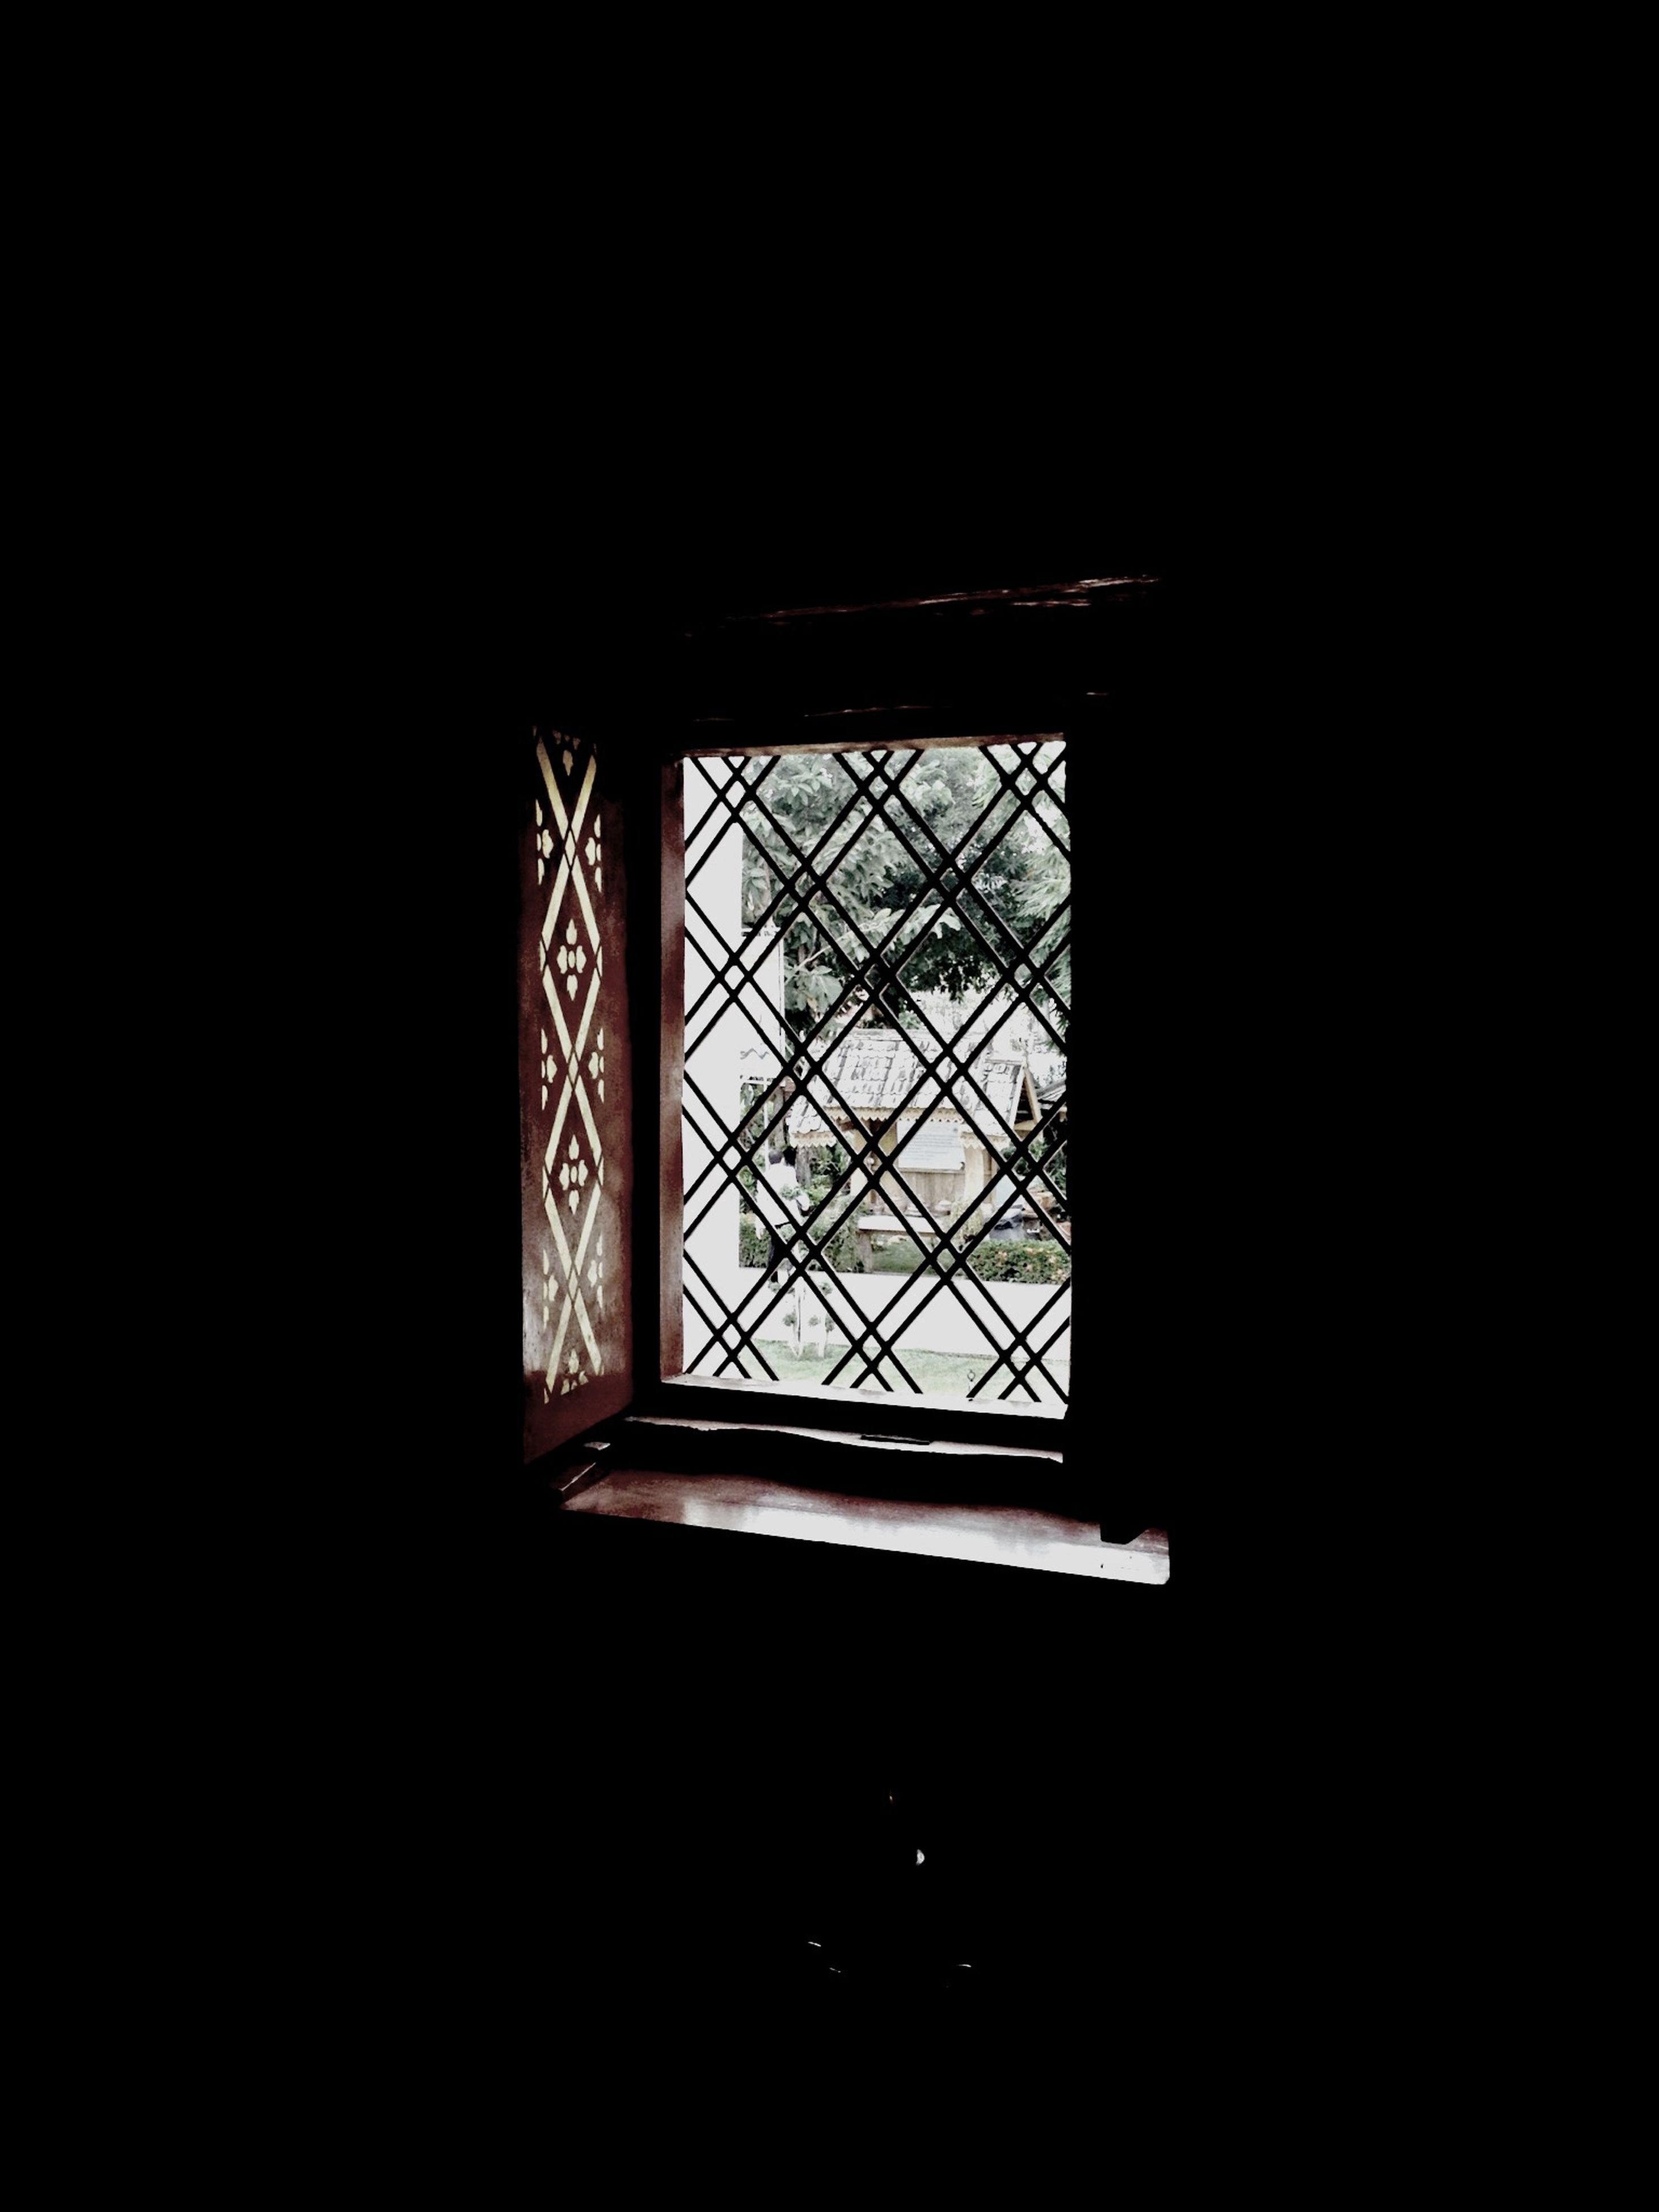 indoors, window, dark, glass - material, built structure, architecture, pattern, geometric shape, copy space, home interior, design, transparent, low angle view, no people, silhouette, house, ceiling, shape, wall - building feature, window frame